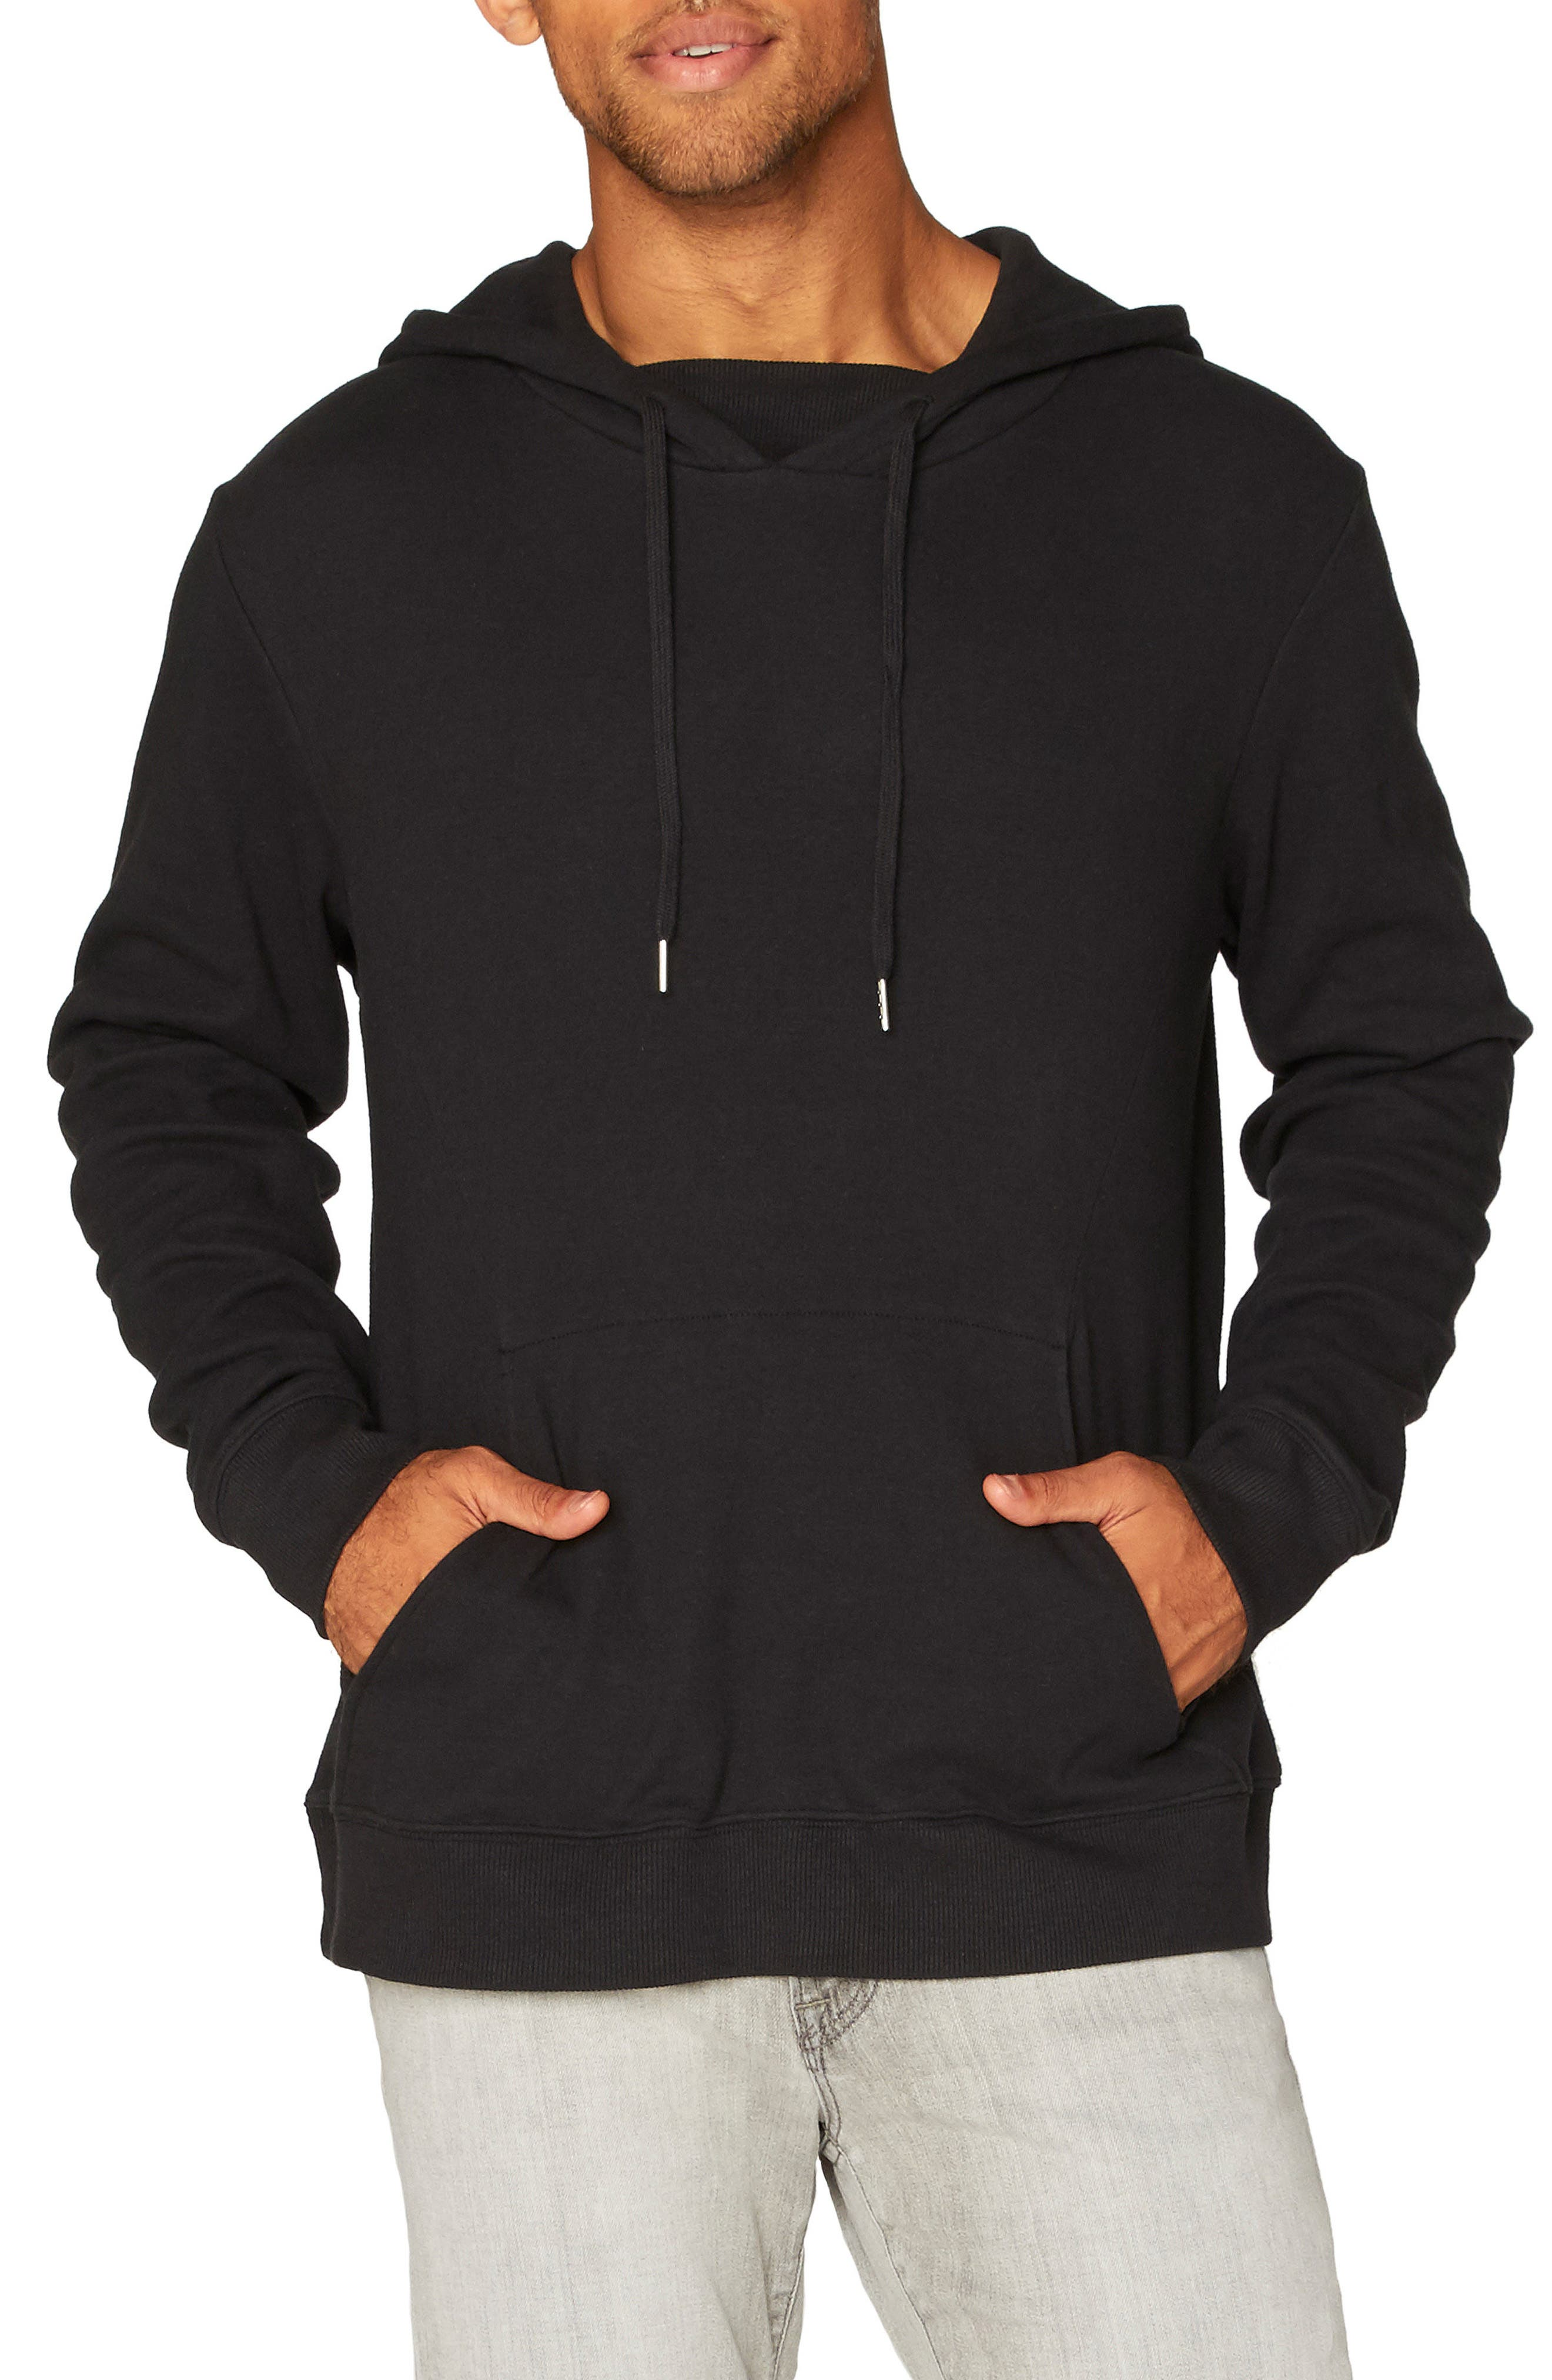 Vance Fleece Hoodie,                             Main thumbnail 1, color,                             Black